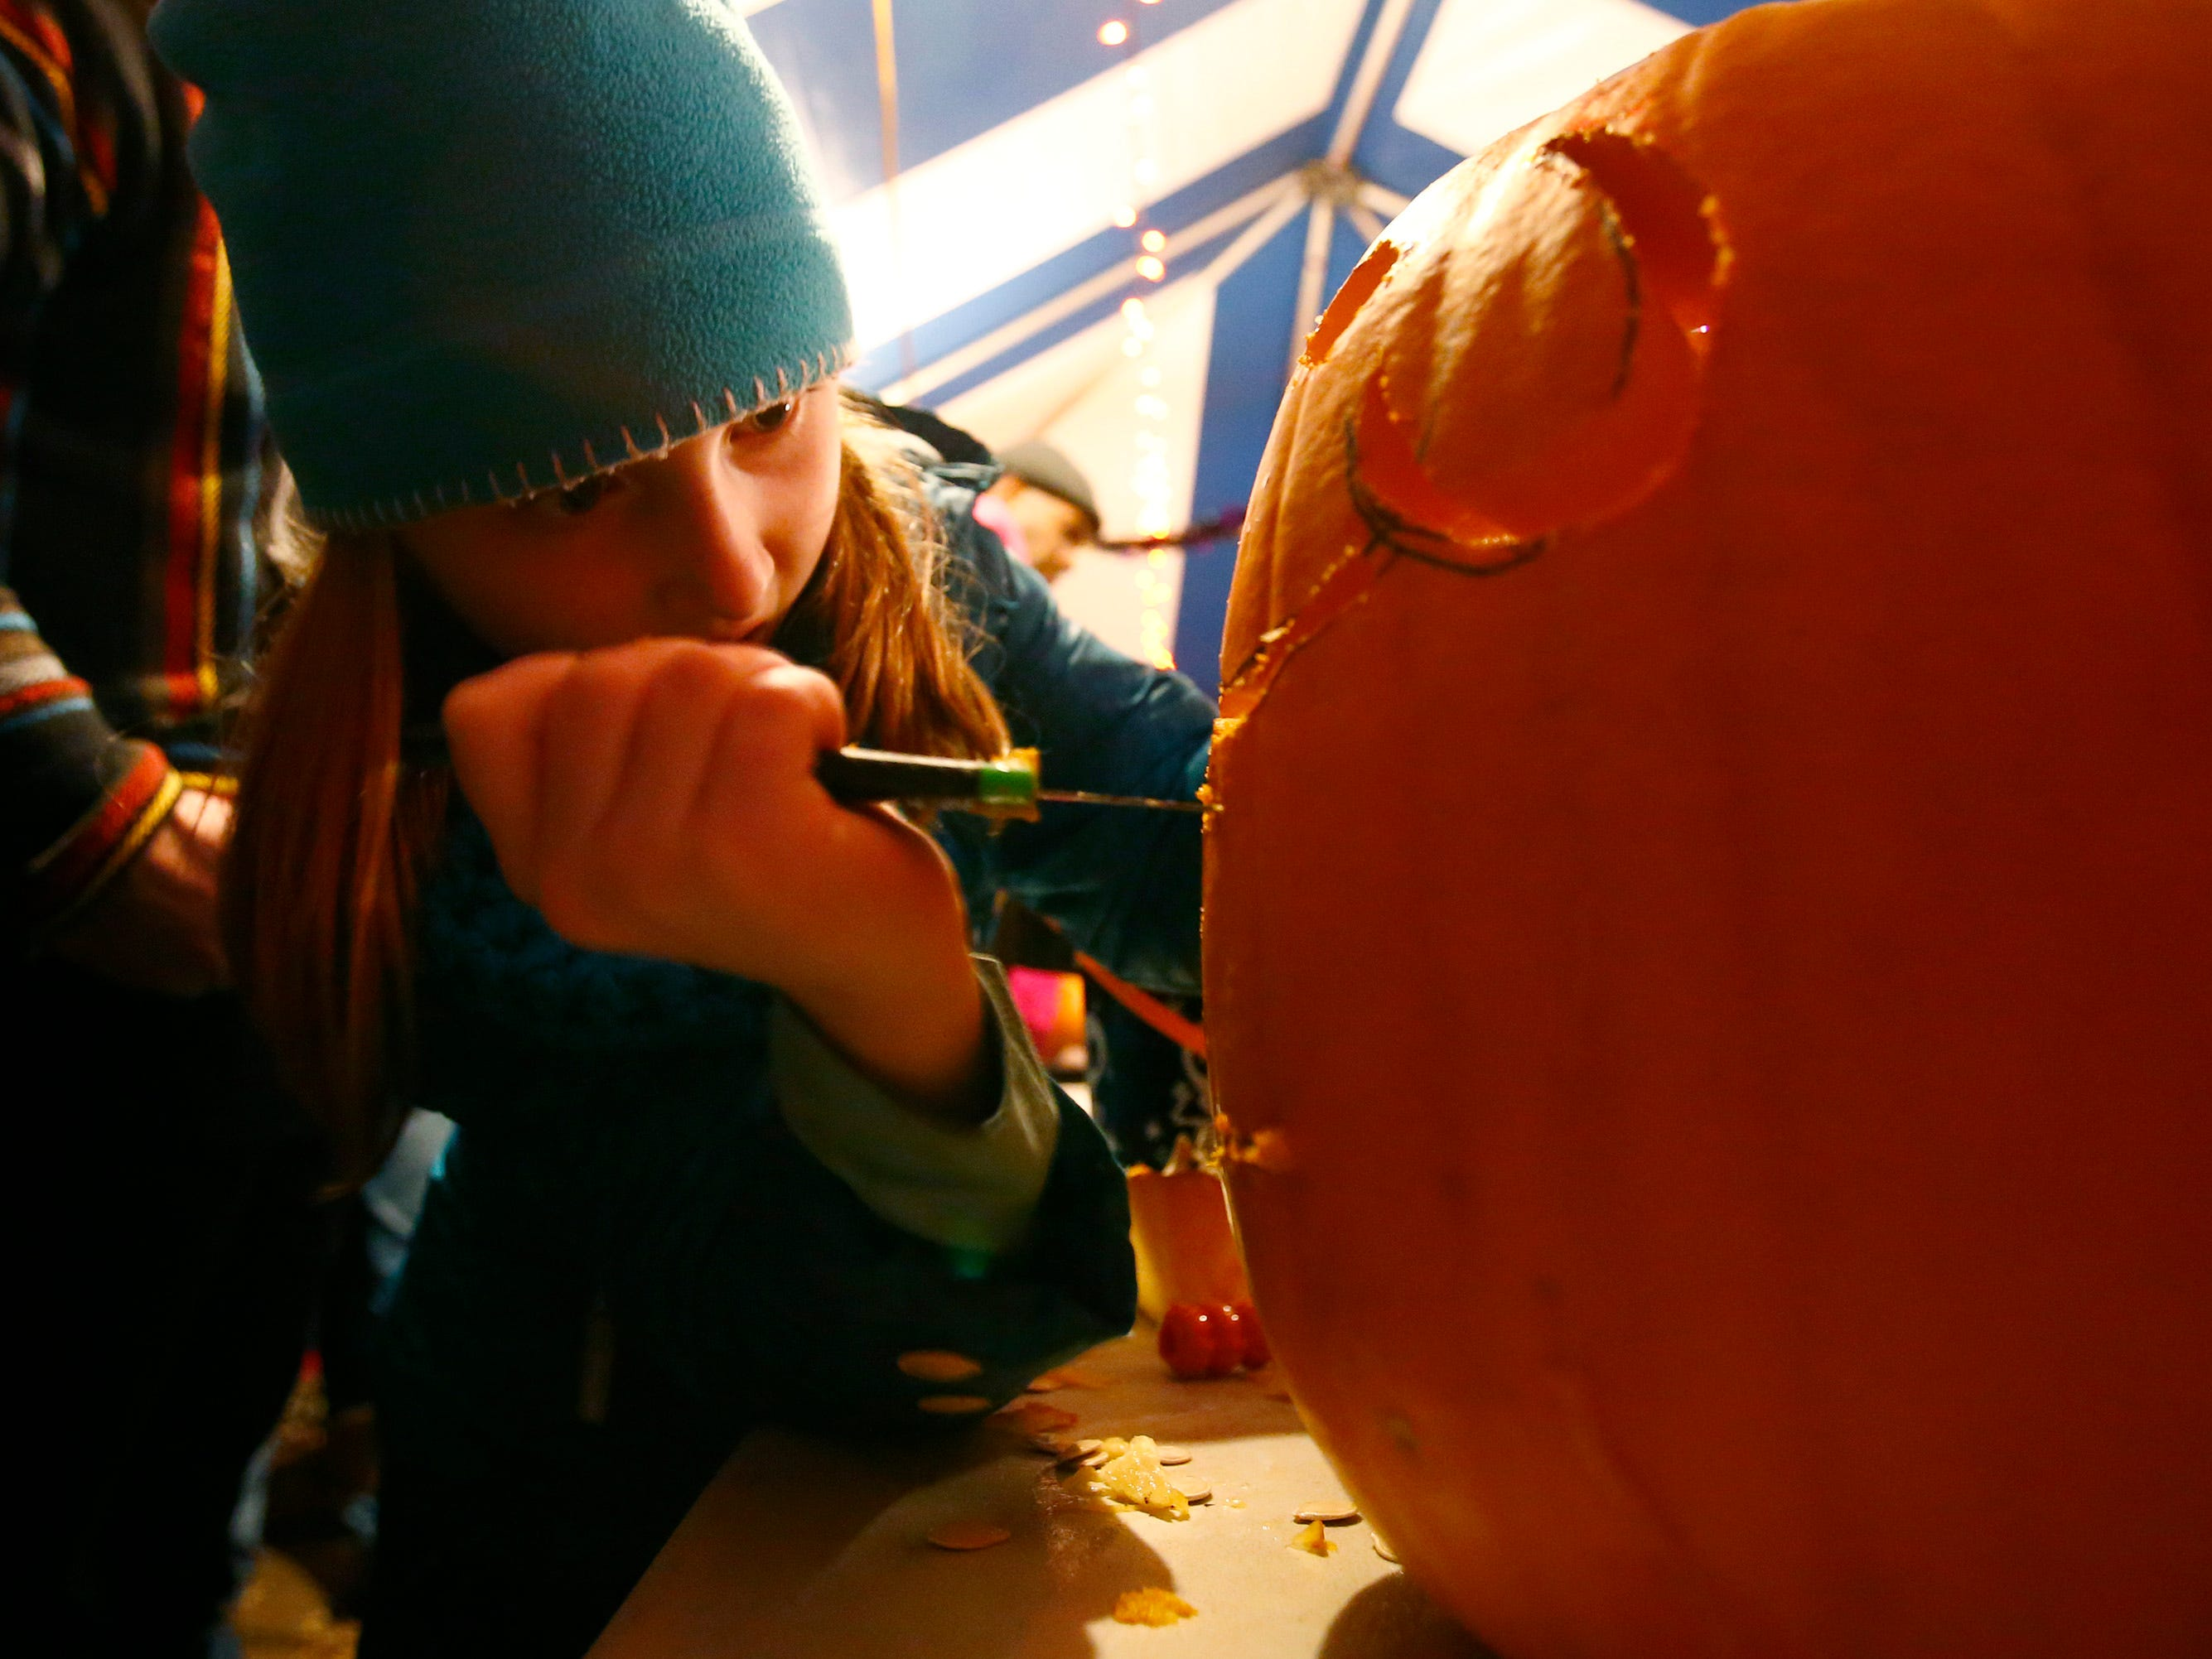 Emmalee Bauer of Wausau carves a pumpkin at the 32nd annual Whitefish Bay Great Pumpkin Festival at Old Schoolhouse Park, hosted by the Whitefish Bay Civic Foundation, on Oct. 25. The festival runs from 6 to 9 p.m. Wednesday, Oct. 24, through Sunday, Oct. 28.